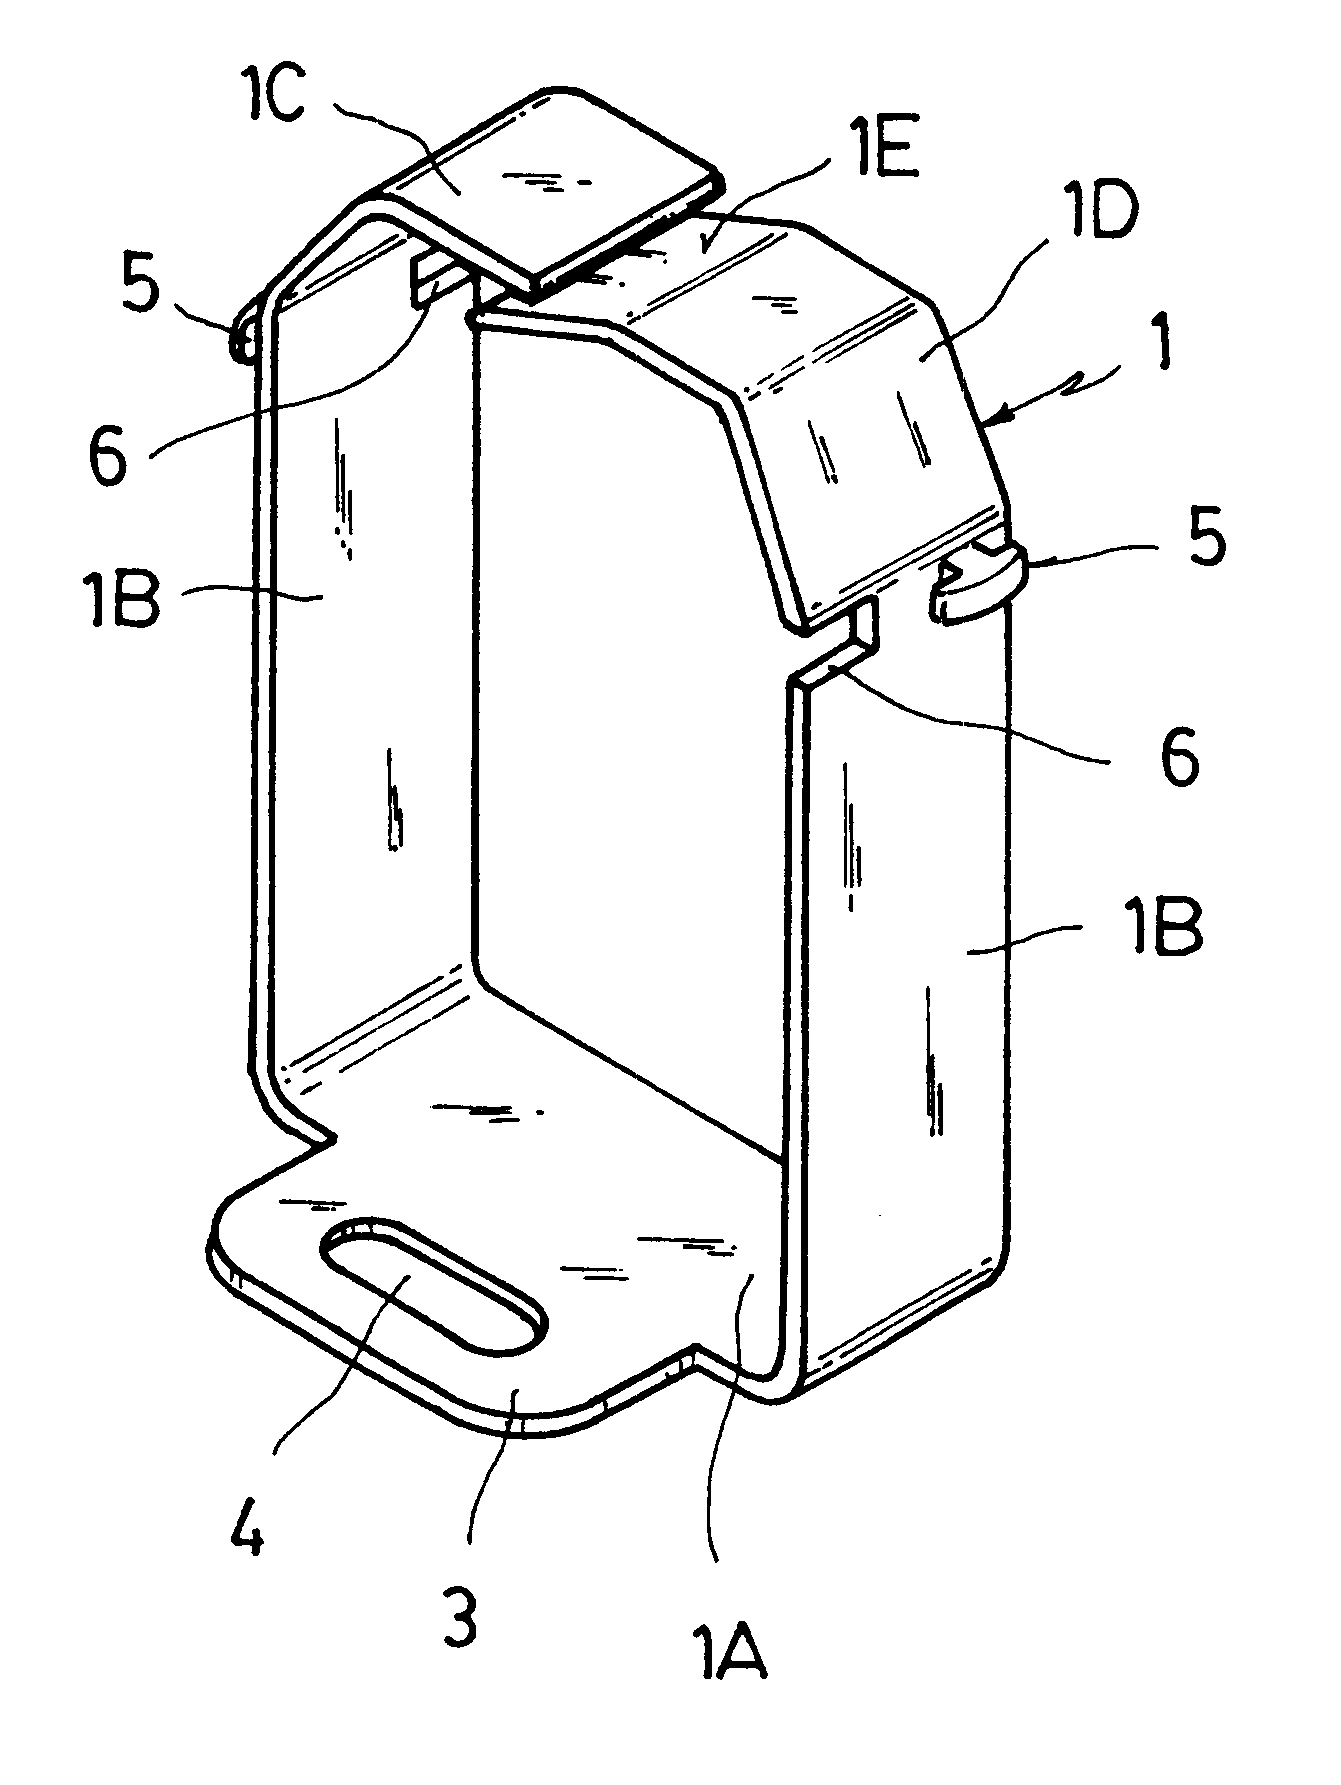 patent us6494414 - retainer device for conductors in an electrical raceway